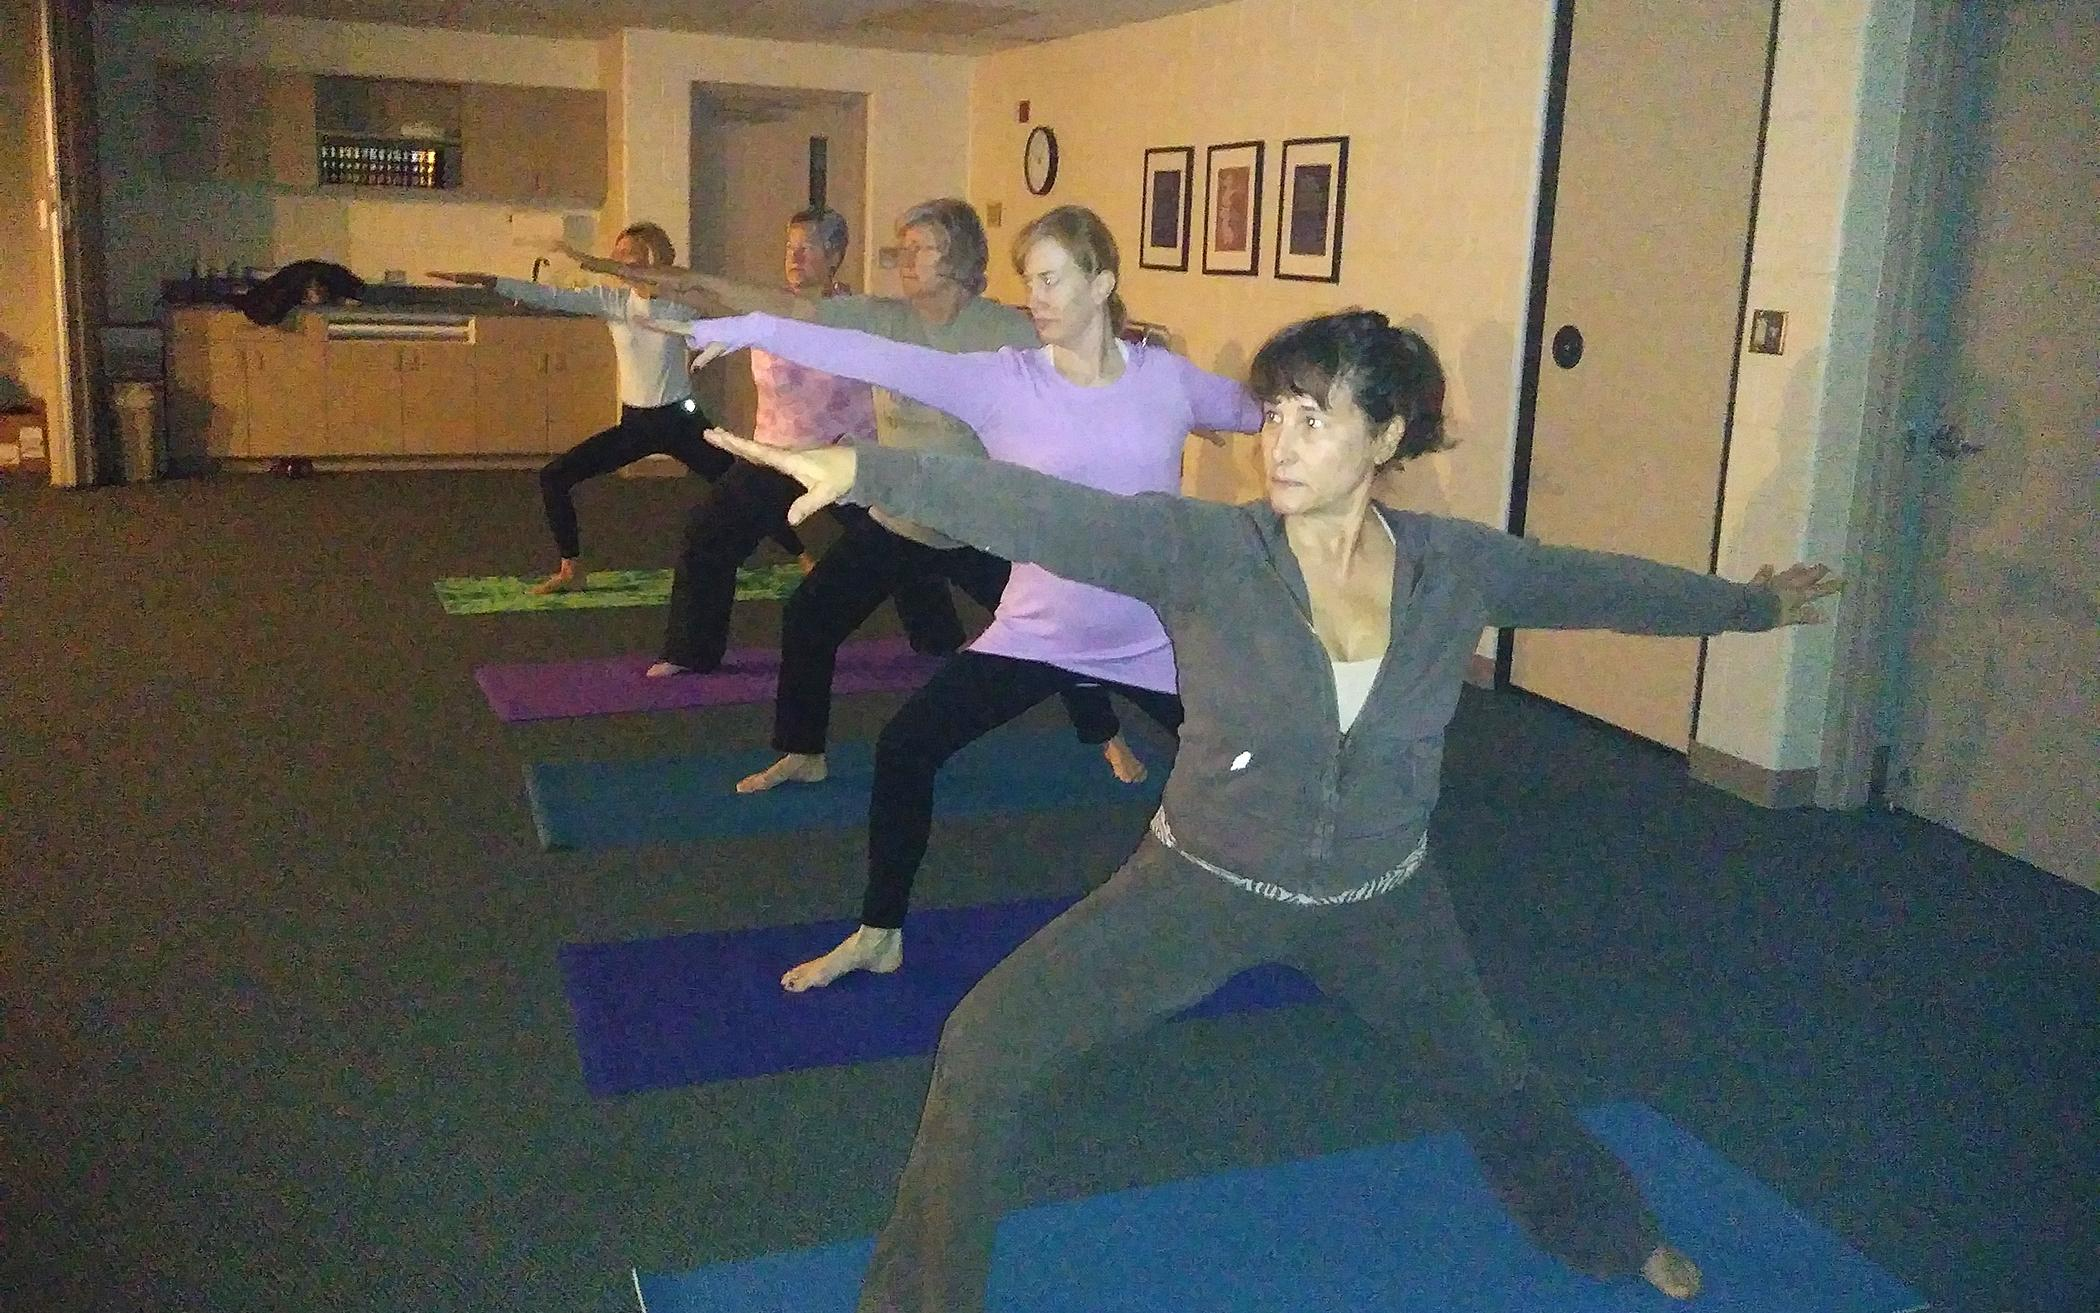 Church's 'Breathing Space' Offers Yoga, Psalms